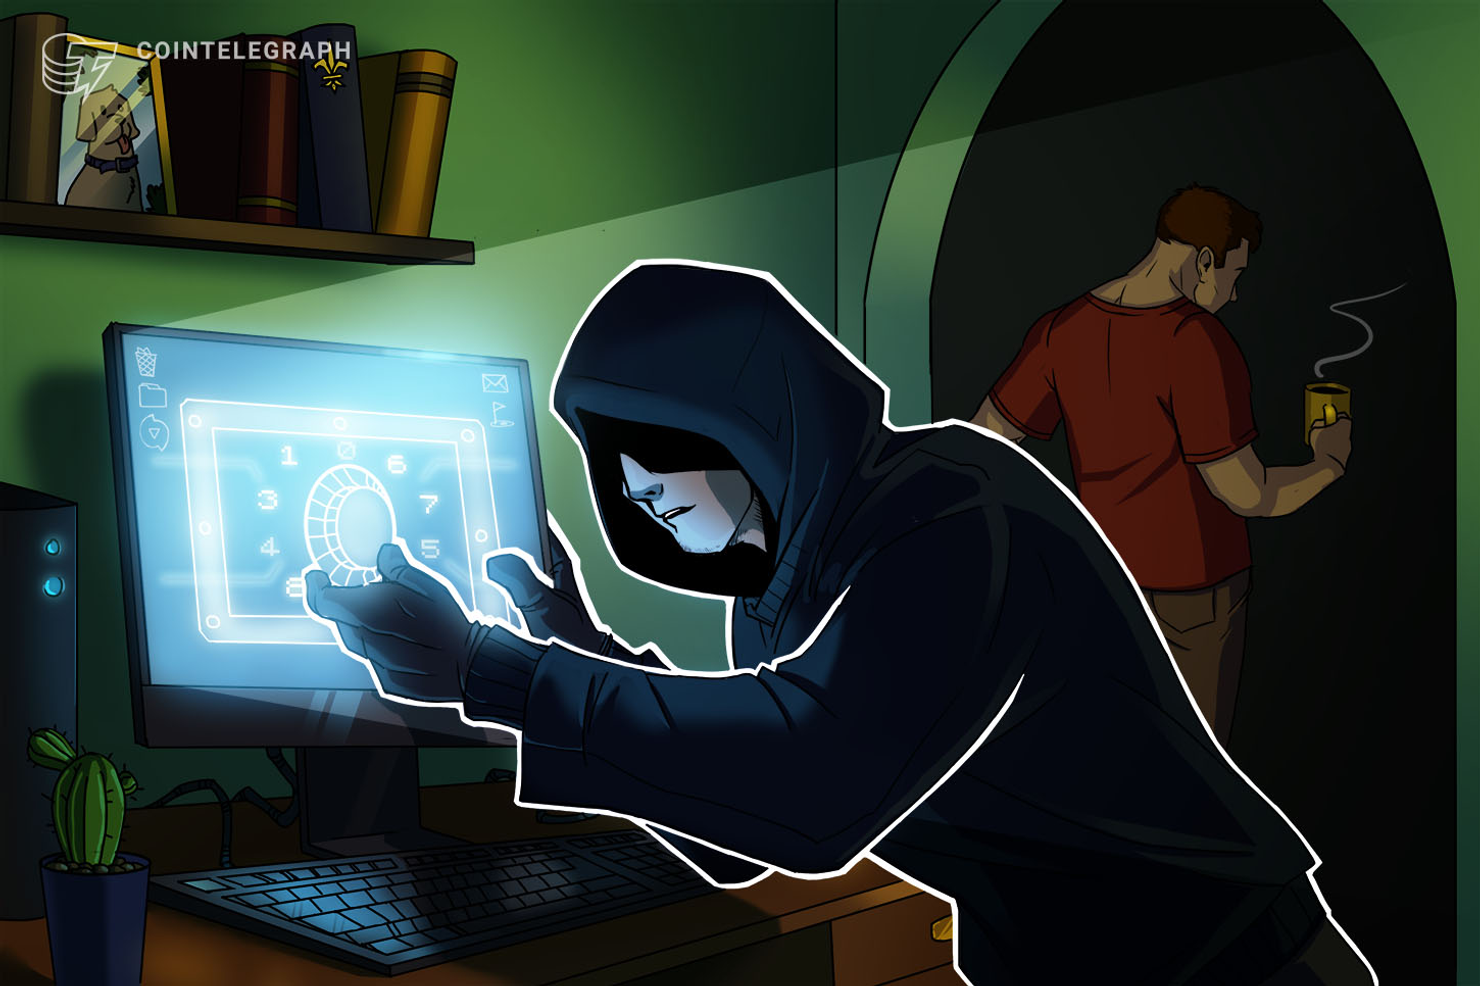 Researchers Discover New Cryptocurrency-Focused Trojan | Cointelegraph